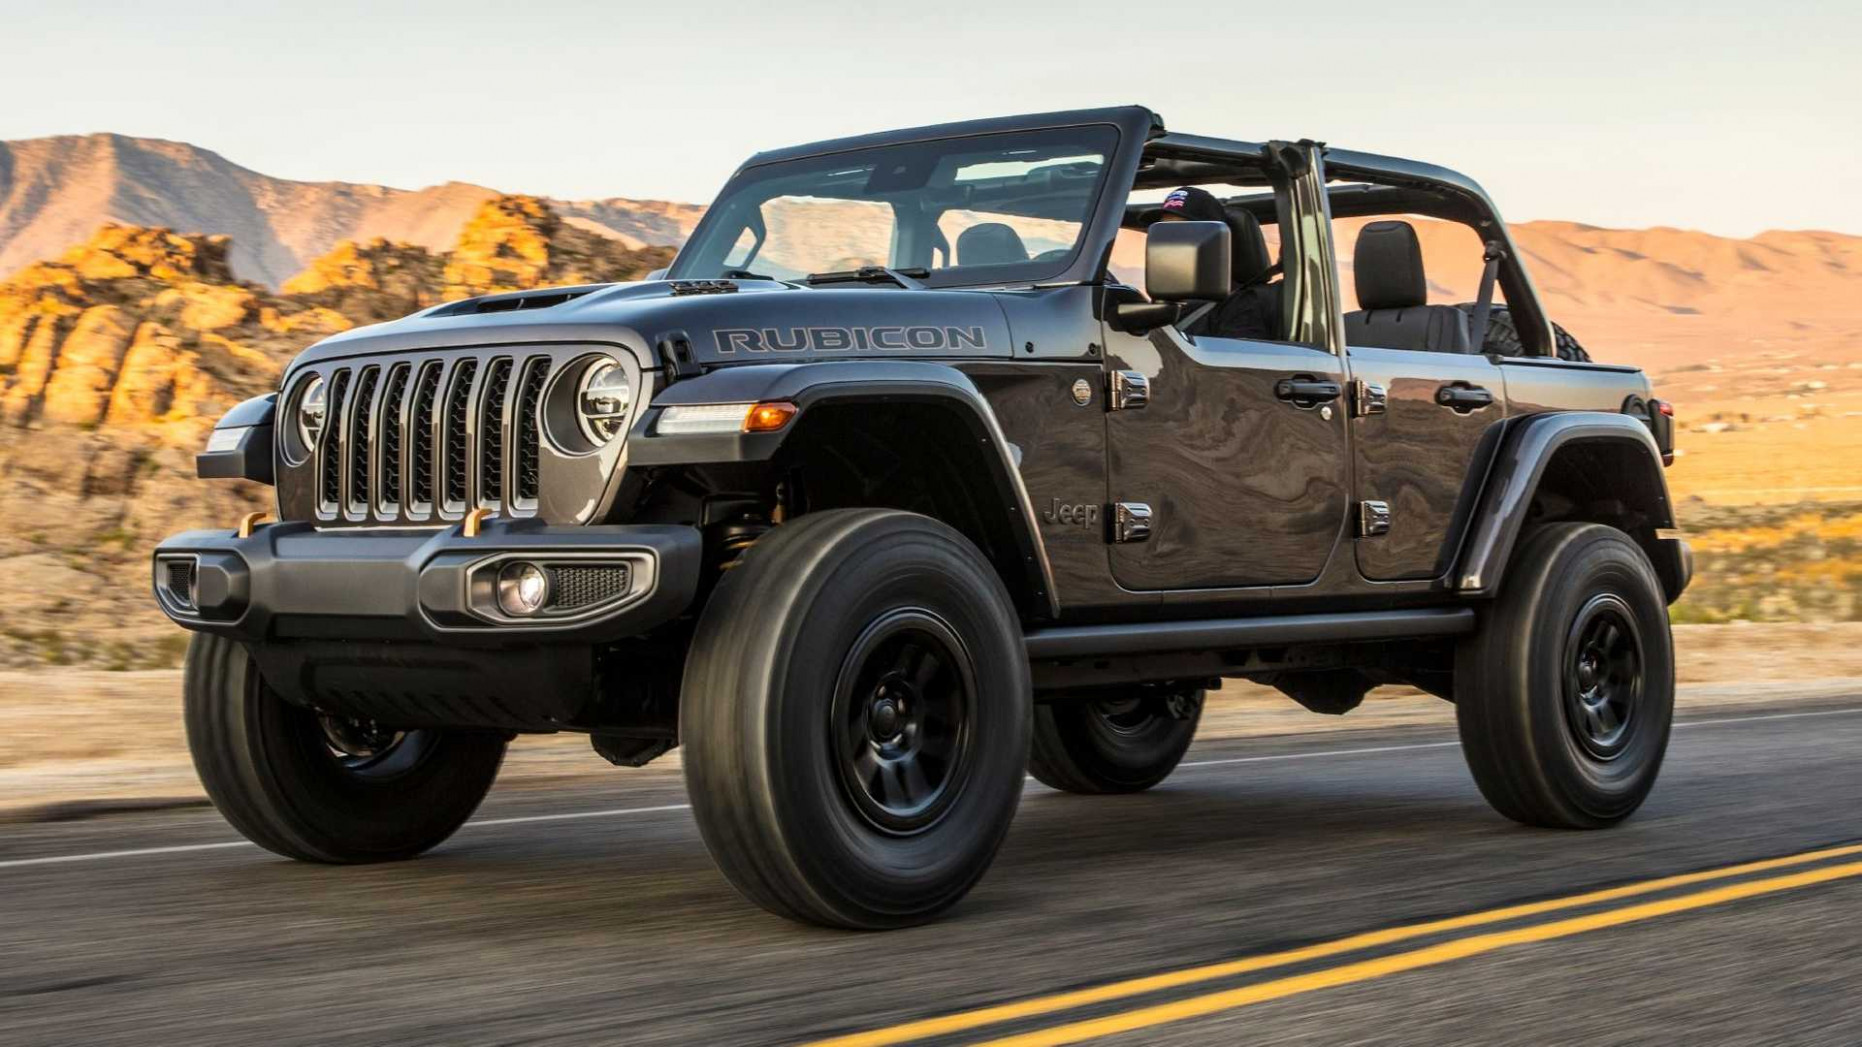 New Concept 2022 Jeep Wrangler Unlimited